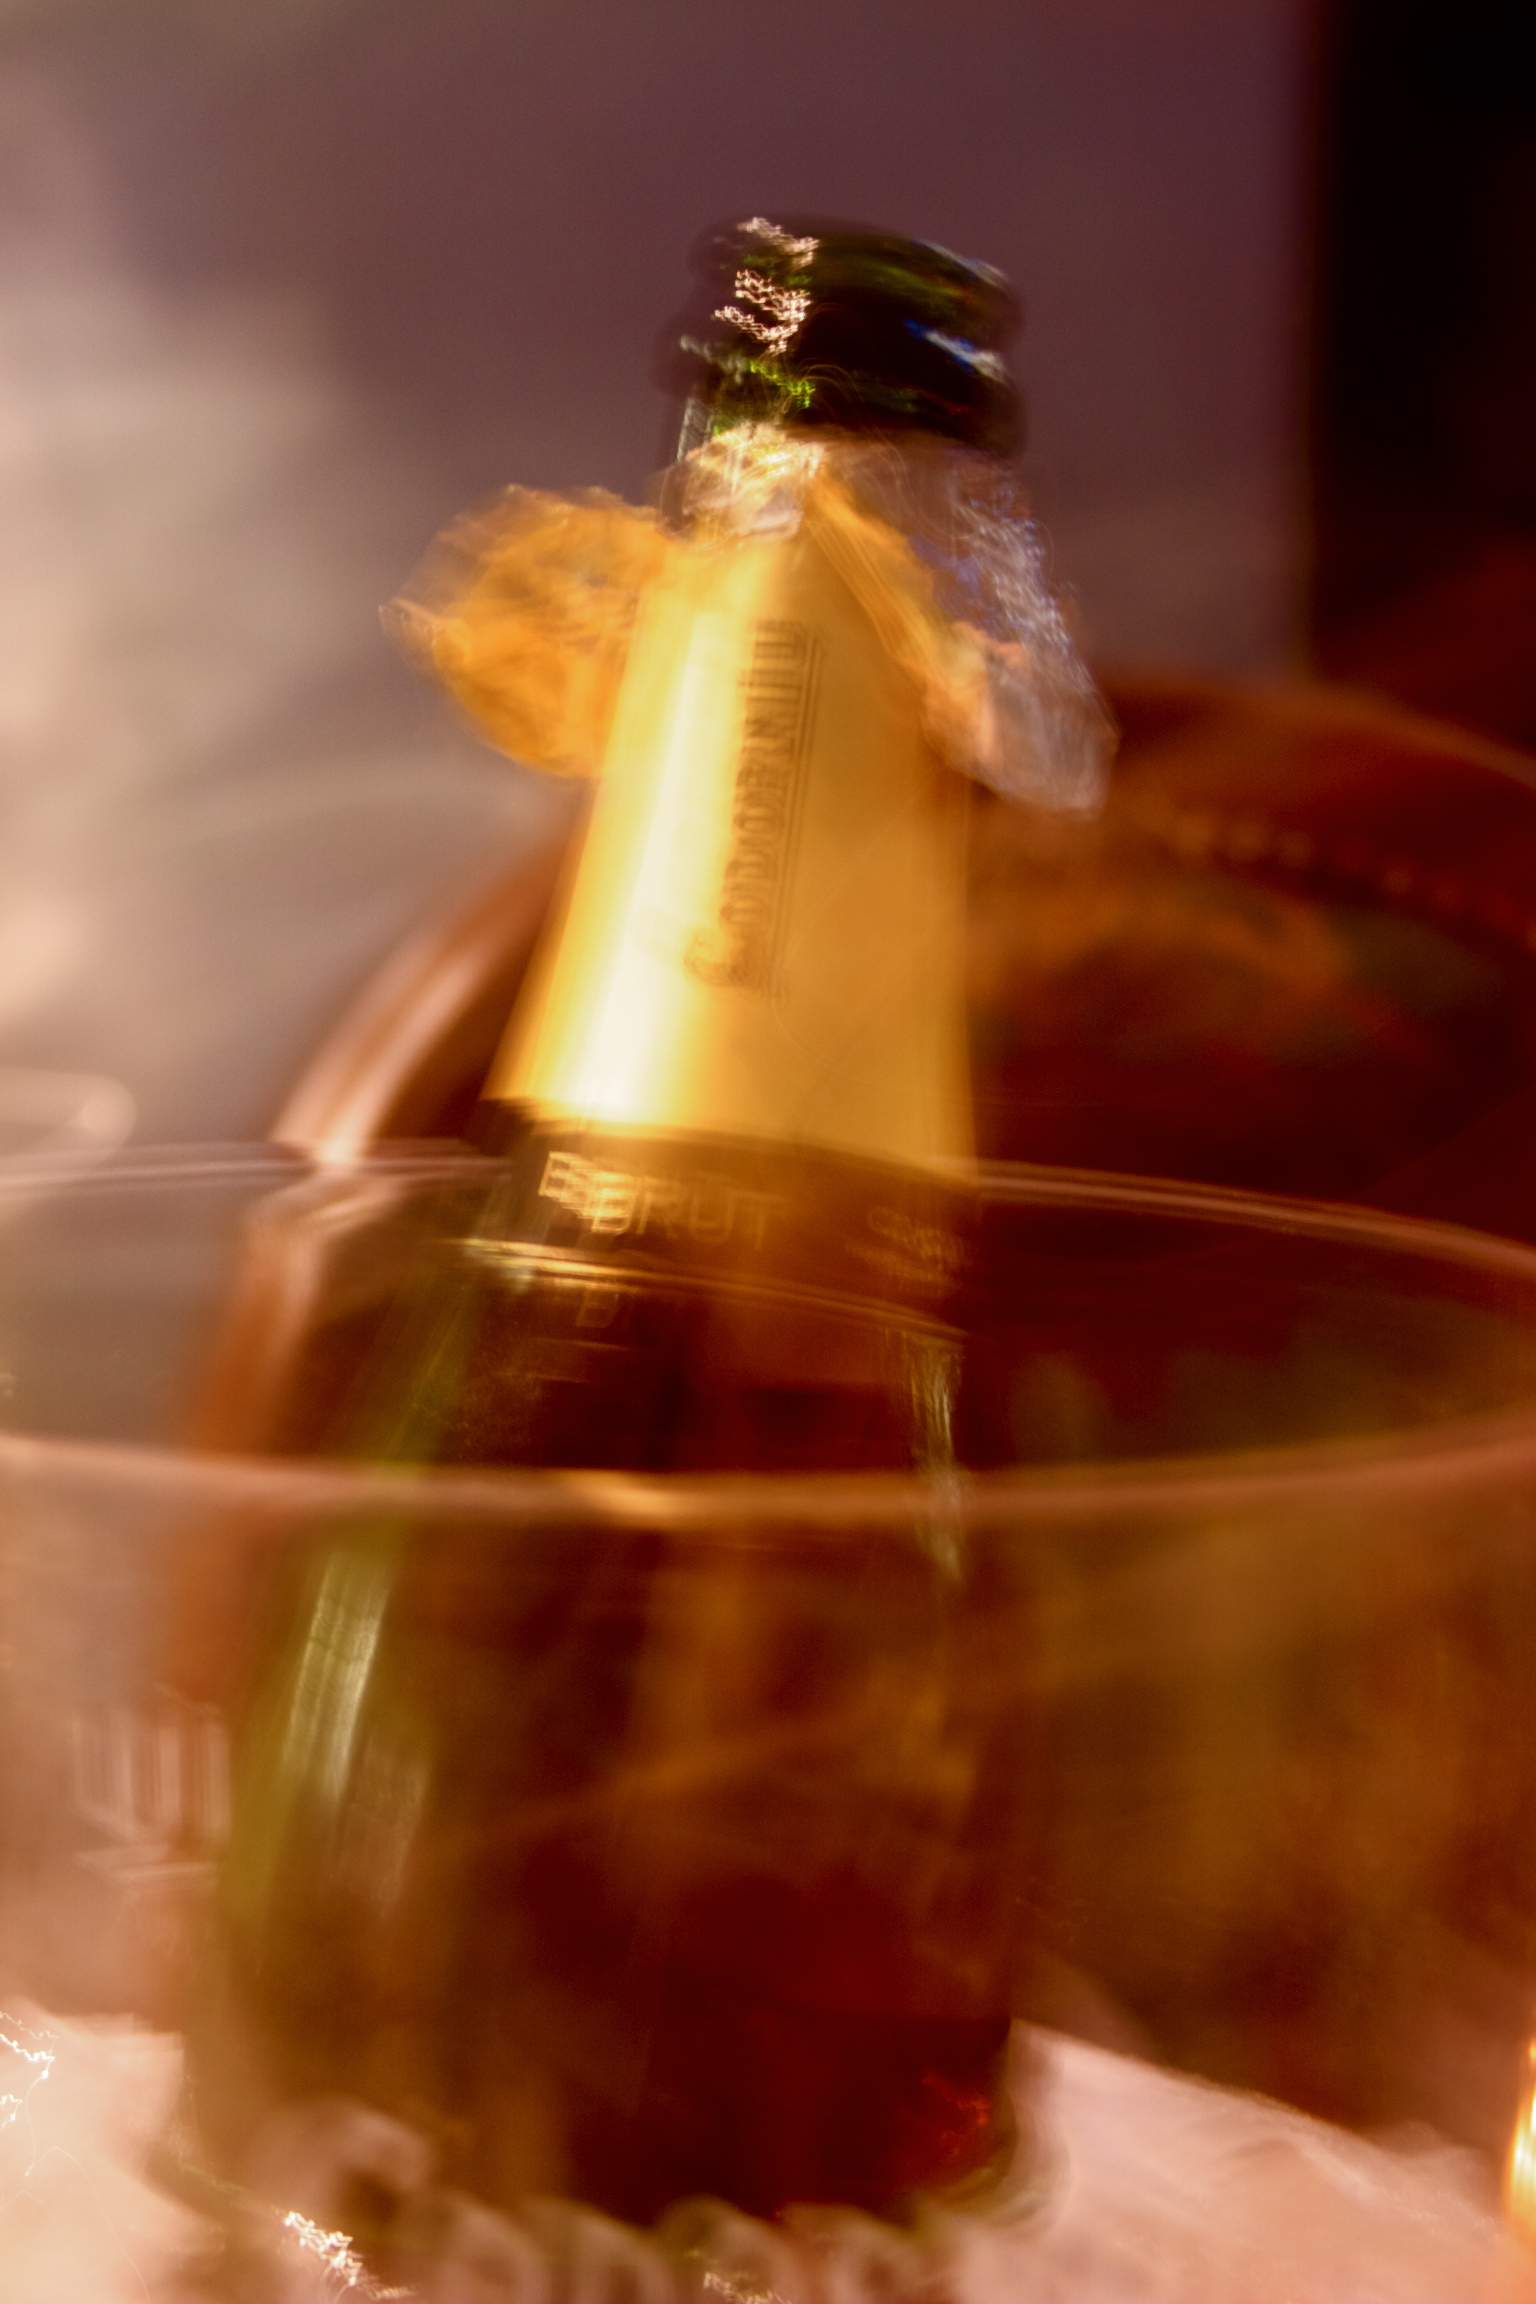 Abstract view of an opened bottle of Cava